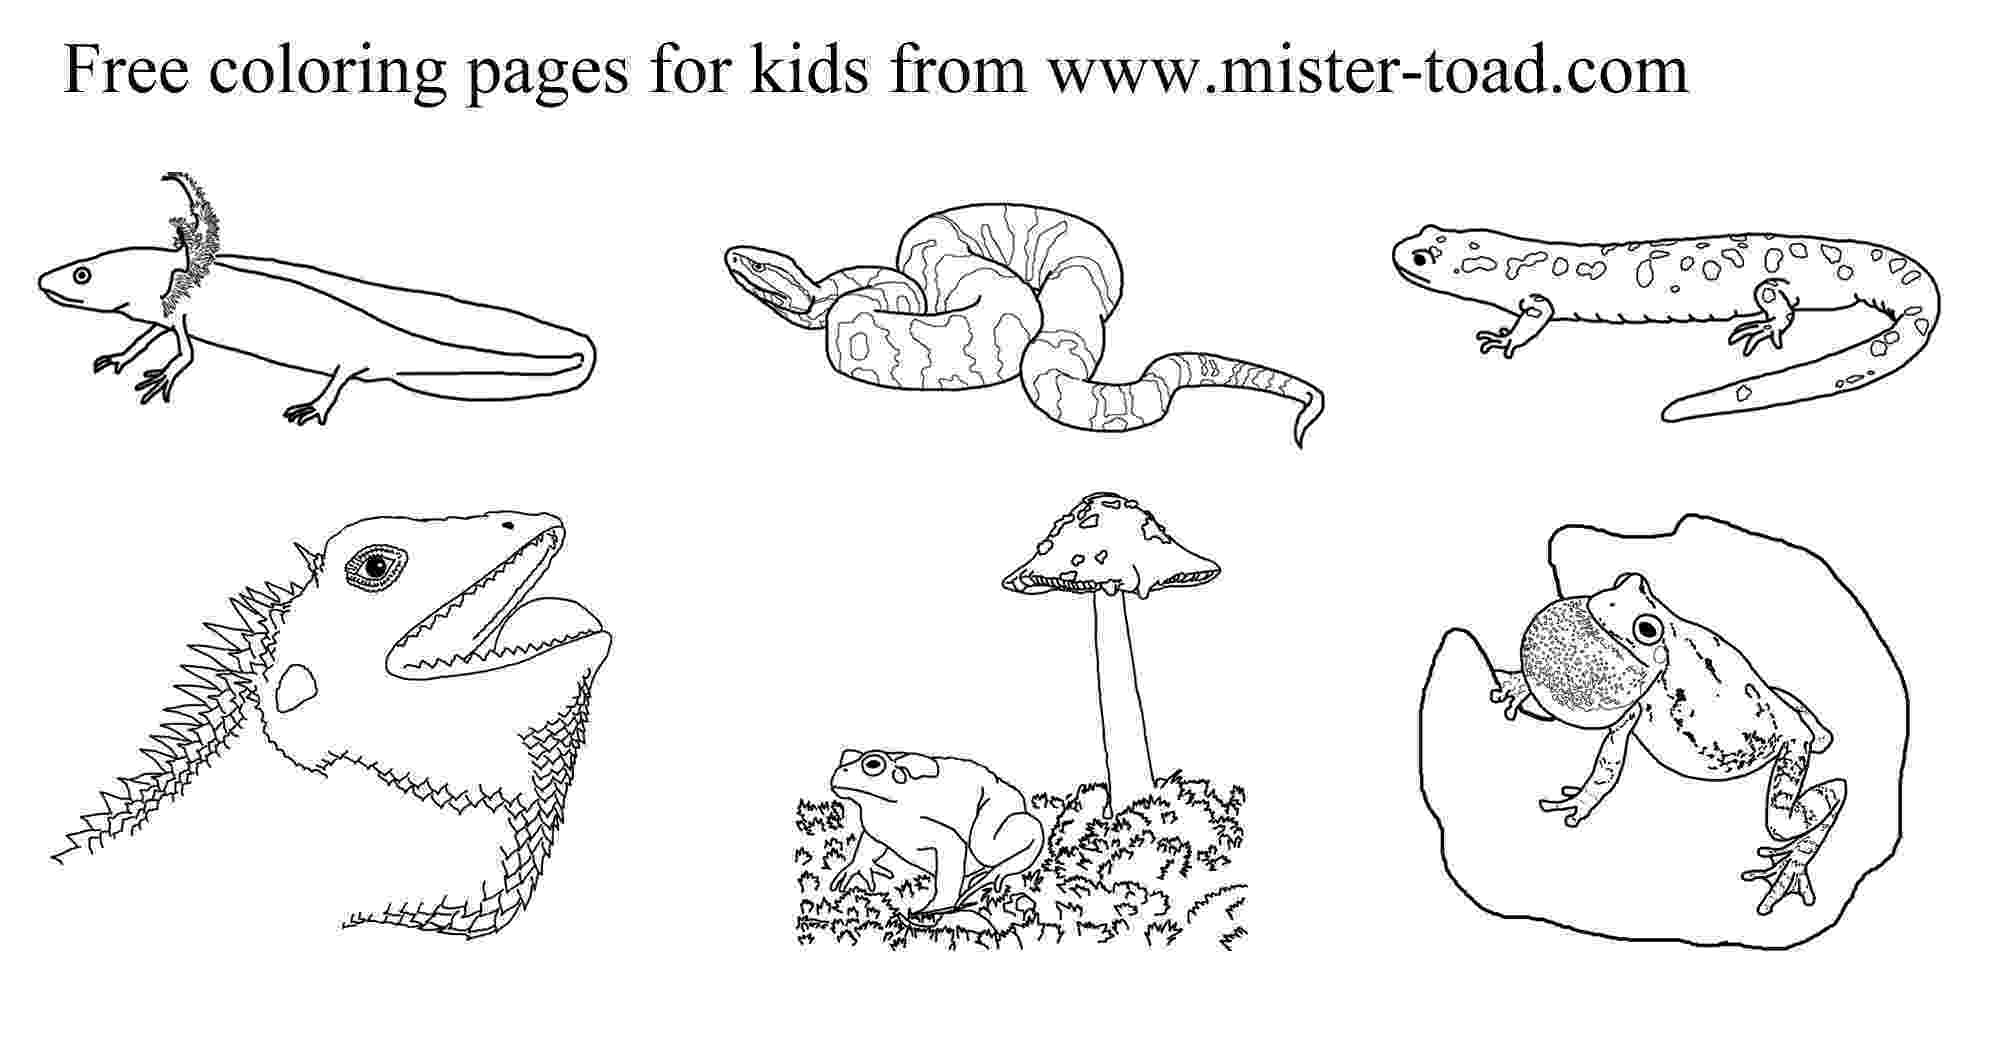 reptile coloring pages reptile coloring pages coloring reptile pages